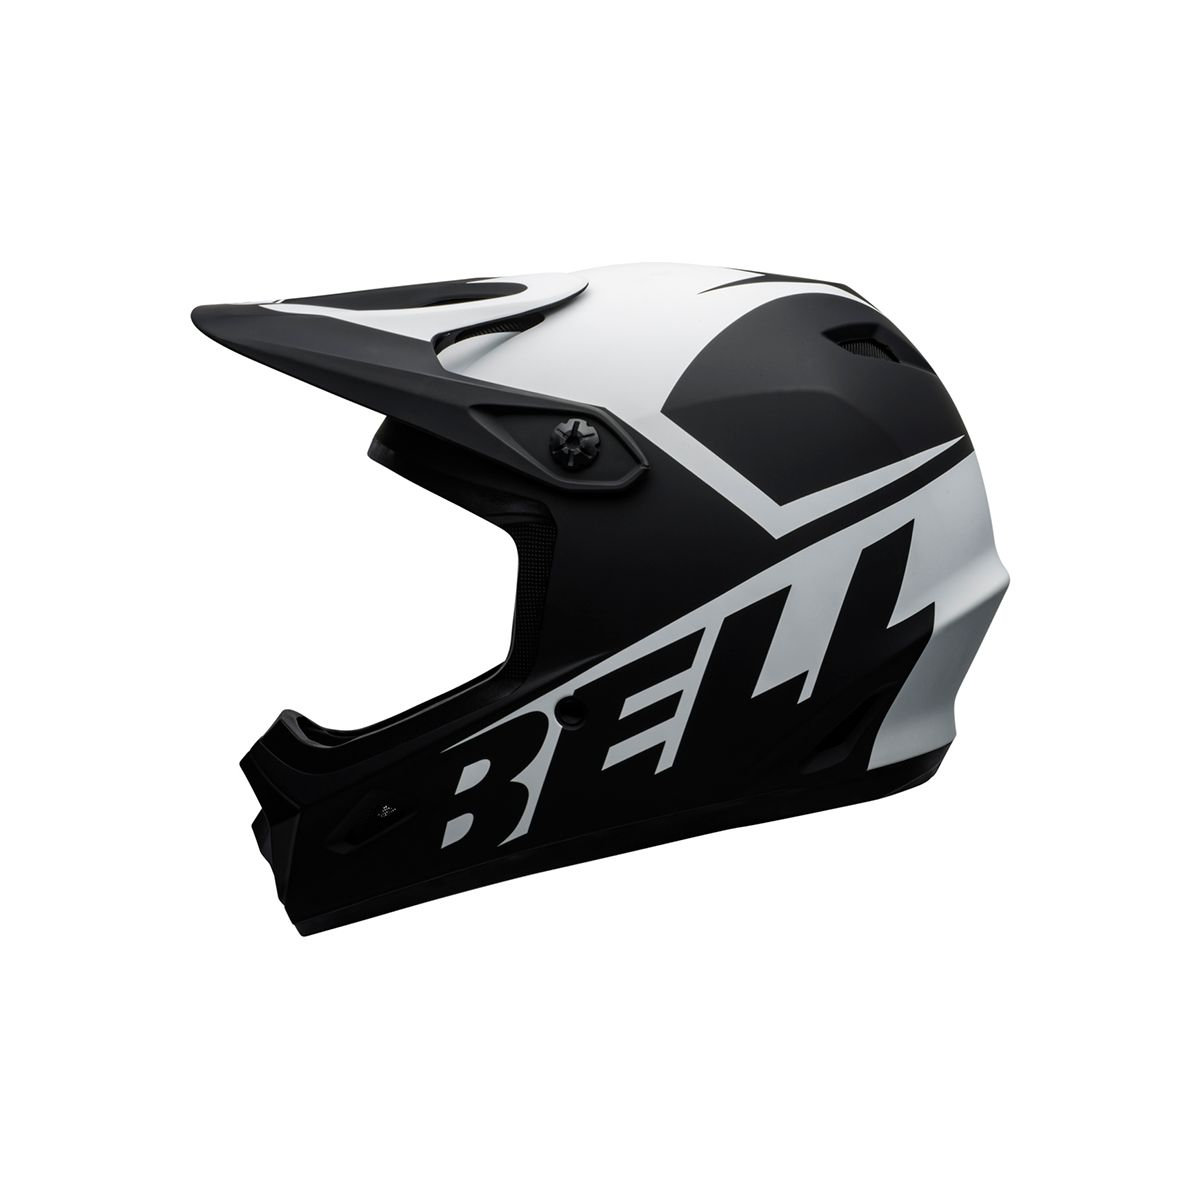 TRANSFER Full Face Helmet